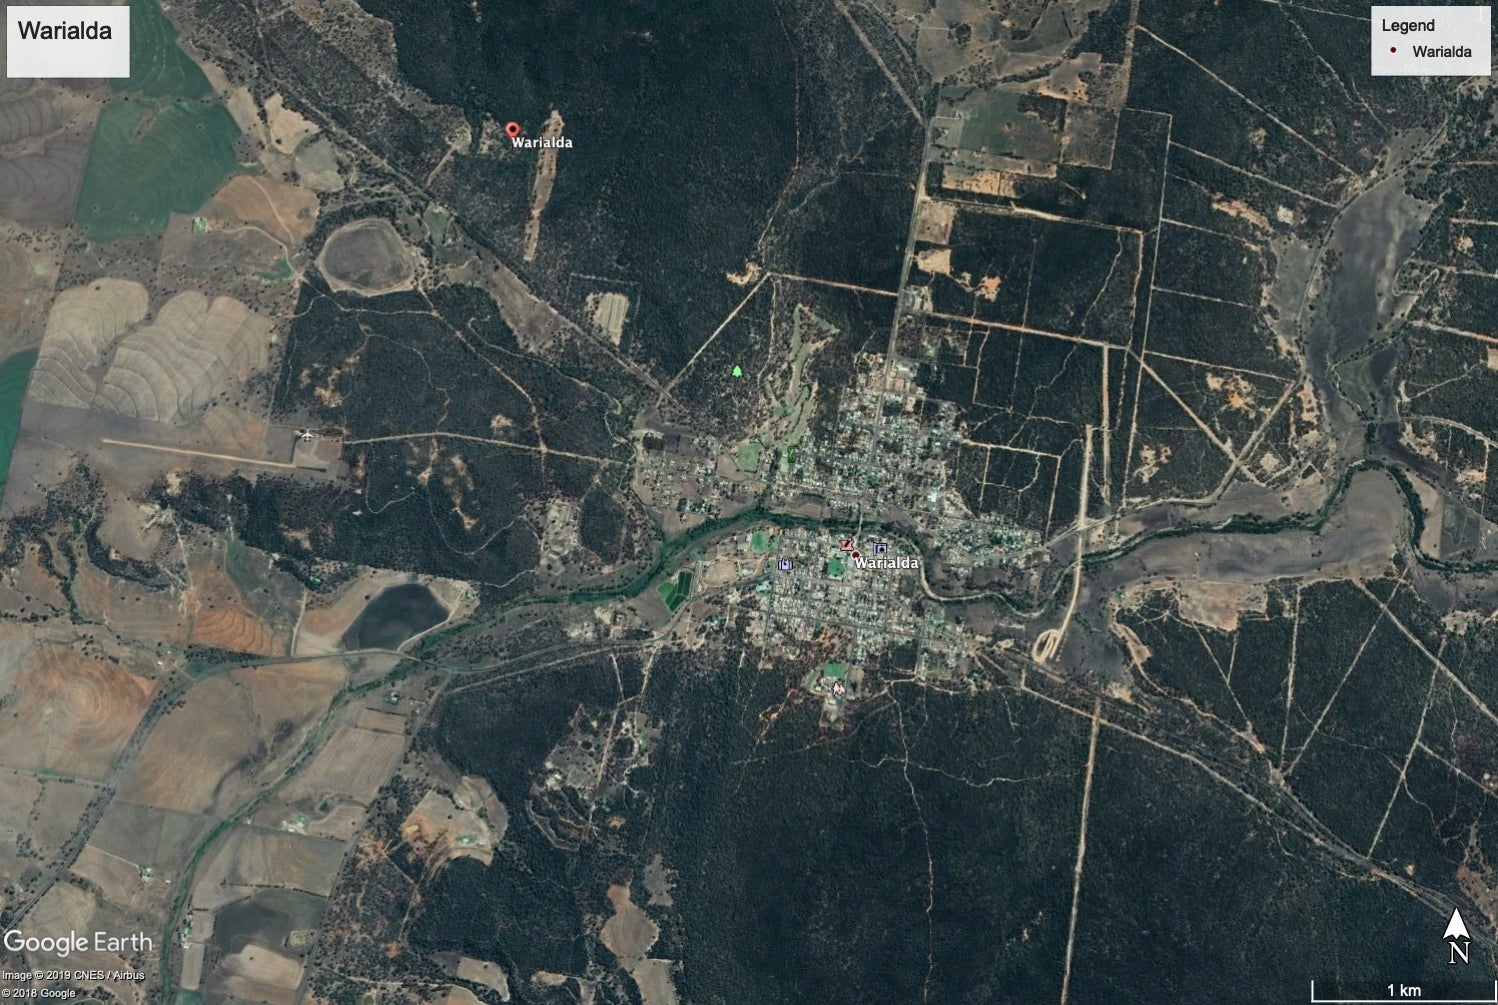 The town of Warialda on the Northern Tablelands of New South Wales